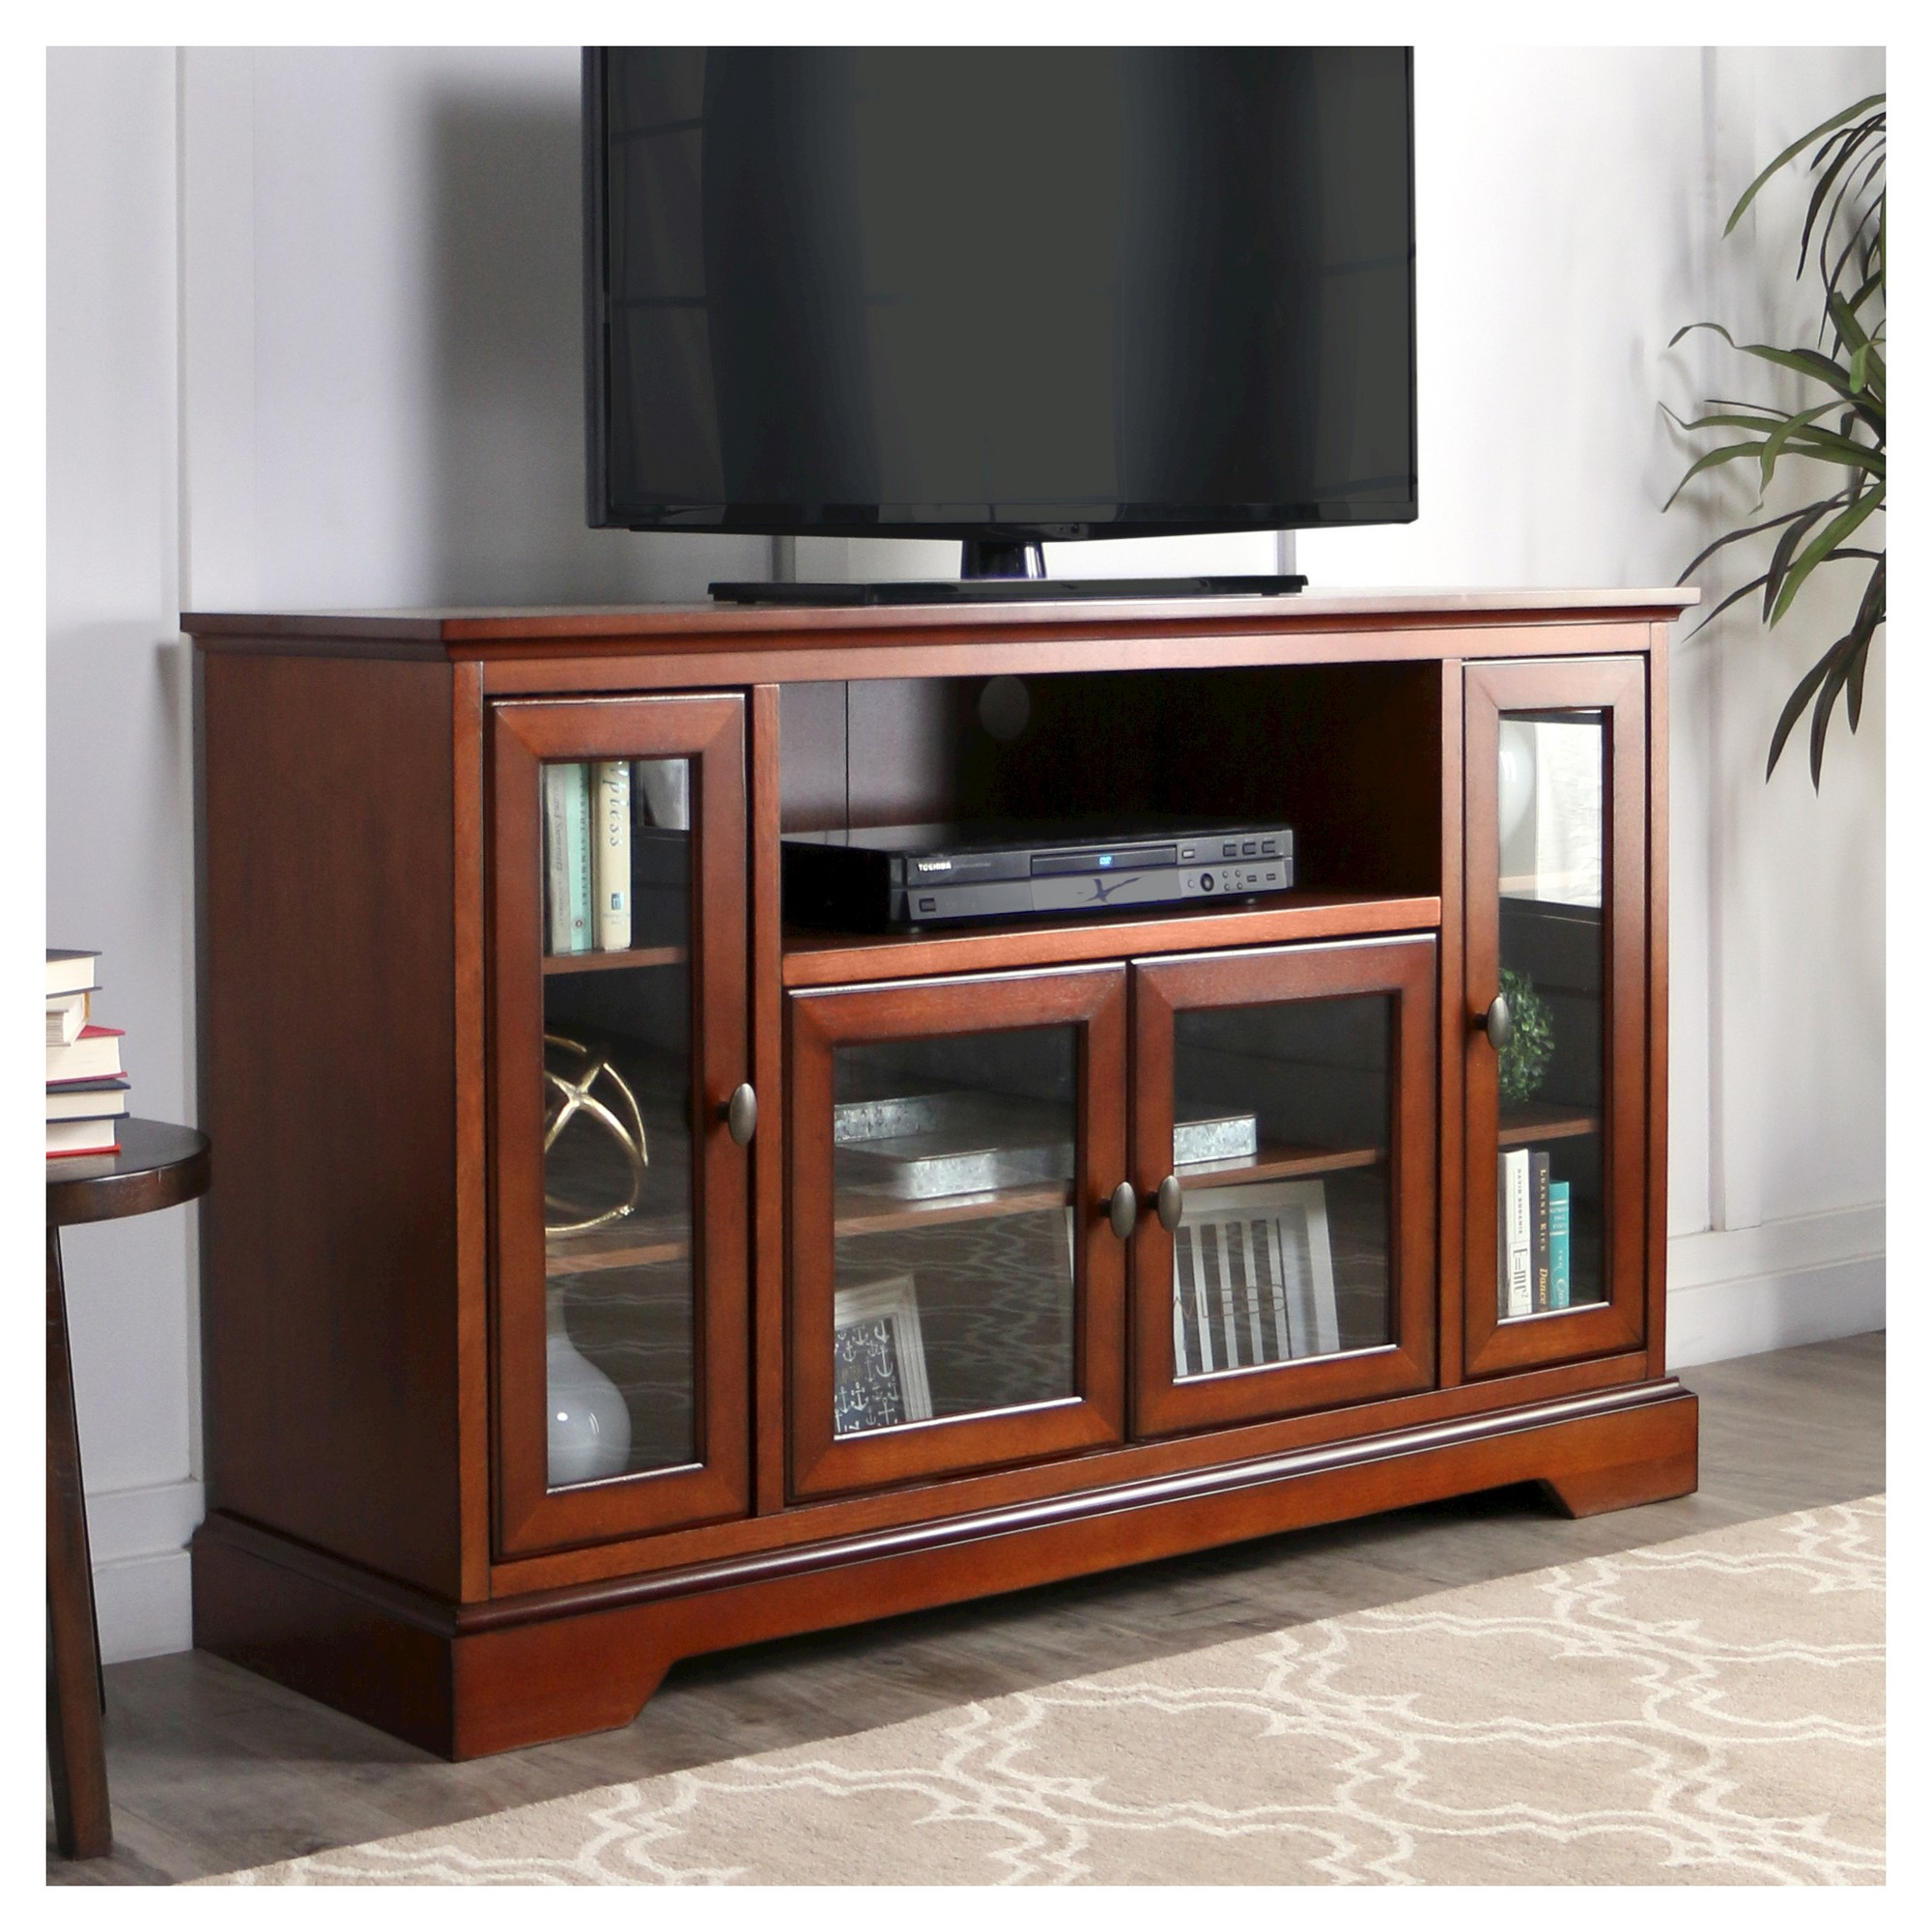 52 Wood Highboy Tv Media Stand Storage Console Brown Saracina Home Tv Stand Wood Saracina Home Highboy Tv Stand